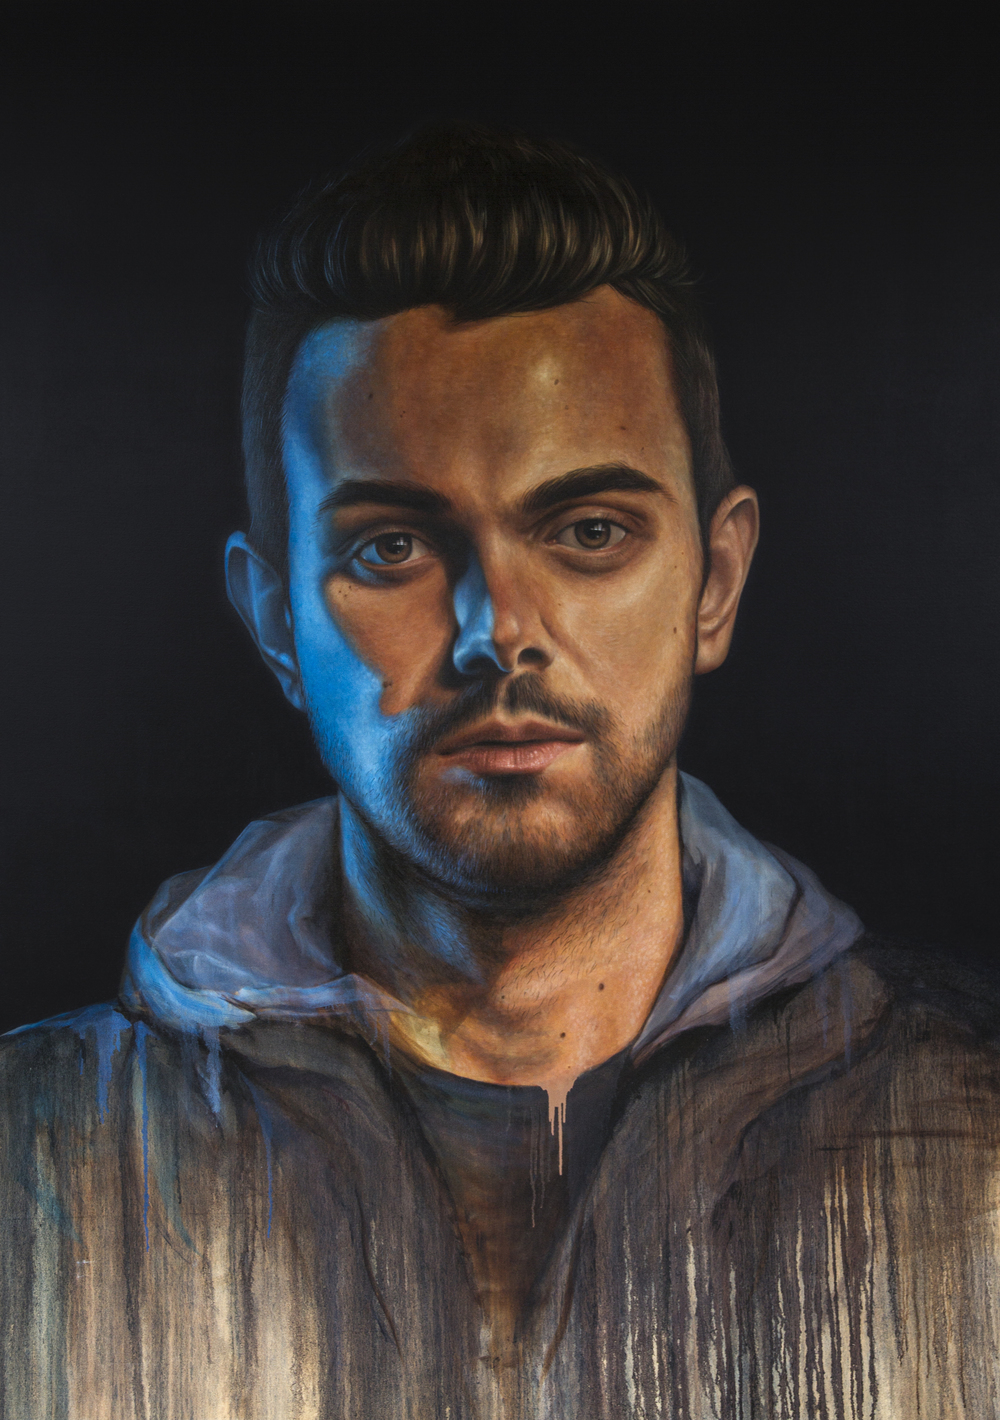 'Portrait of Tom Iansek'  Oil on Canvas (240 x 180cm) 2015